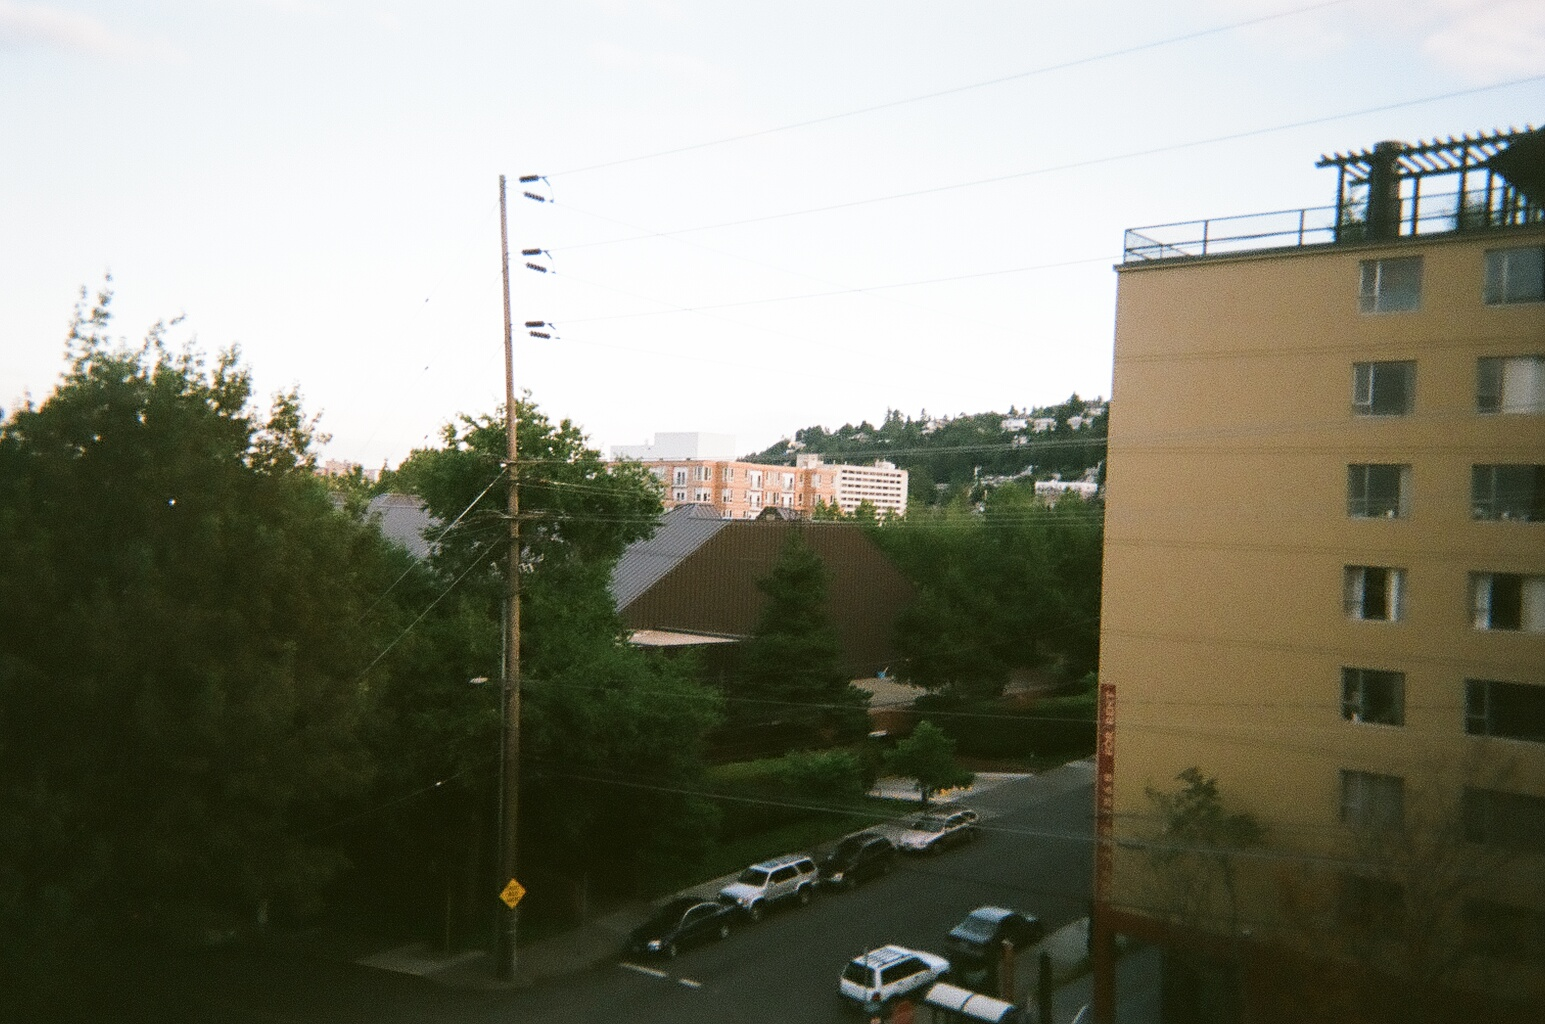 The view outside my window